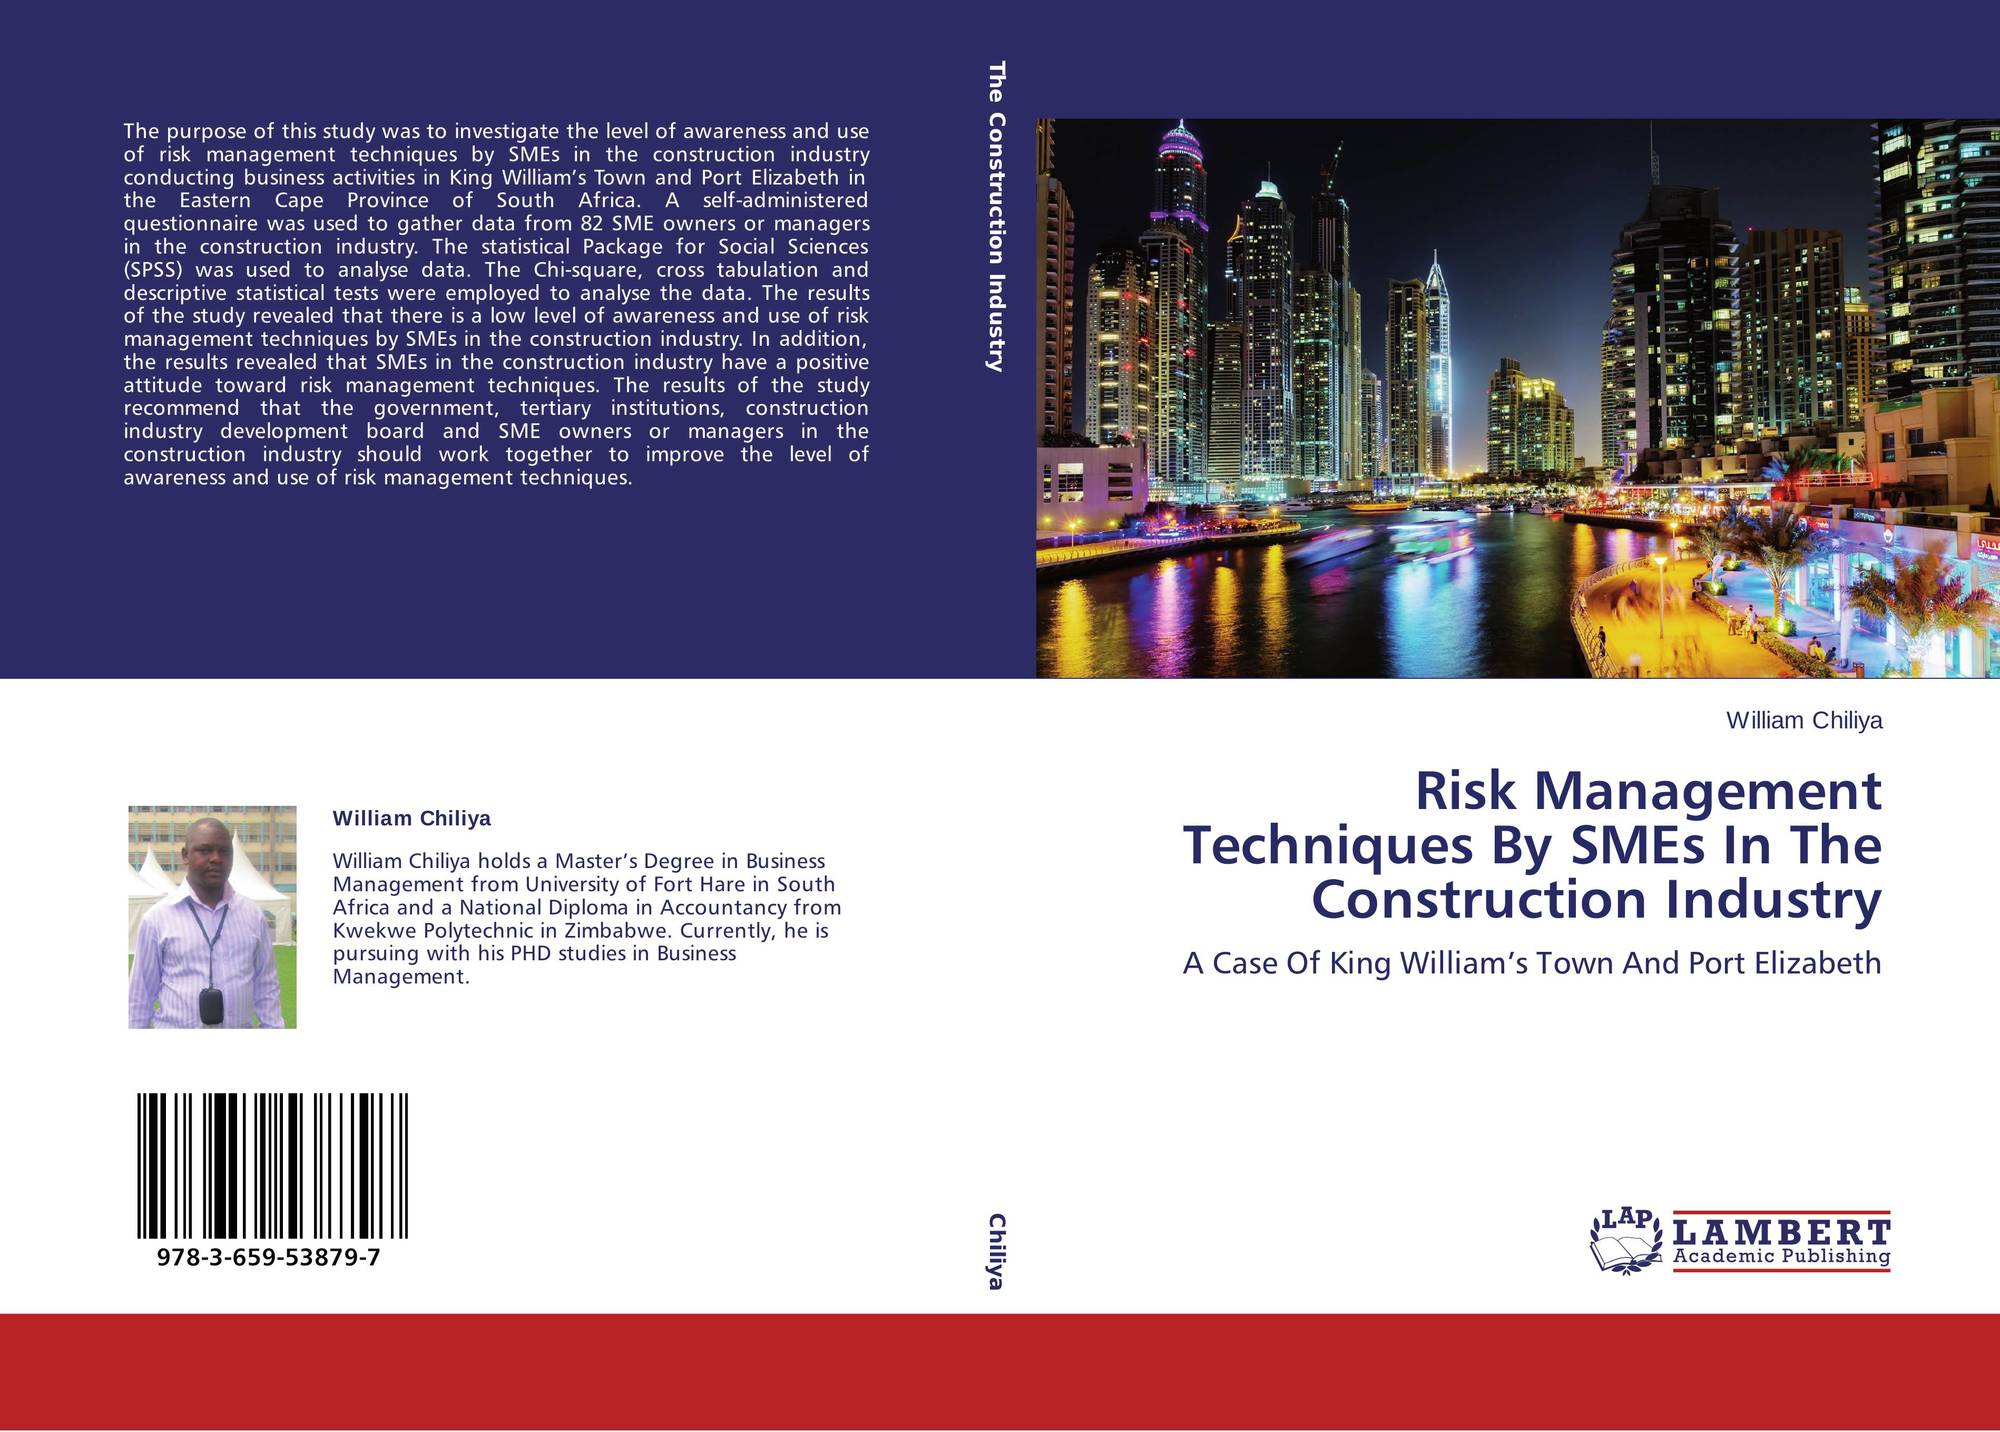 thesis construction industry Students program of study options for program of study plan a thesis a masters thesis typically follows traditional models of scientific inquiry and reporting (both qualitative and quantitative modes of inquiry are acceptable), which logically implies more independent research and data collection than is generally required for a pp.